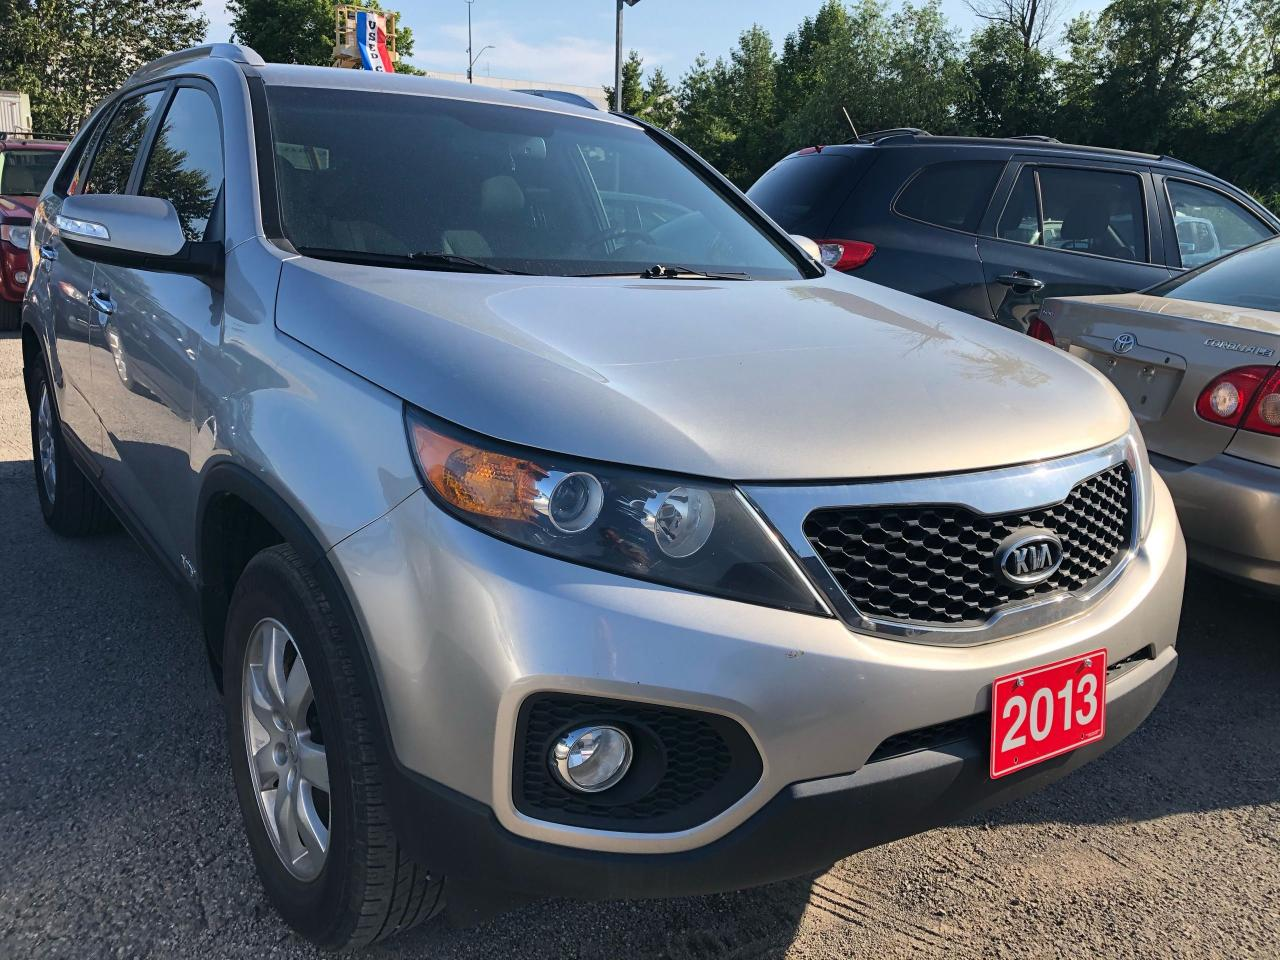 used 2013 kia sorento lx for sale in pickering, ontario carpages.ca